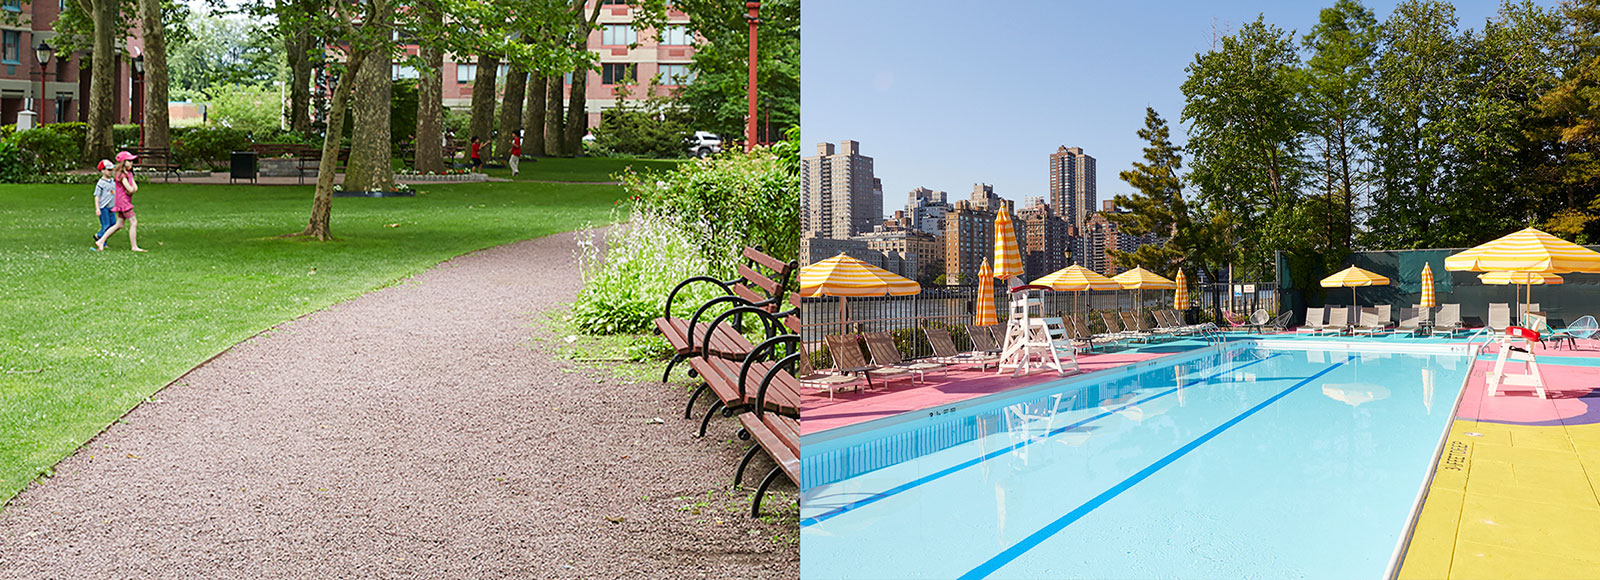 ManhattanPark_Amenities_Replacement2-1